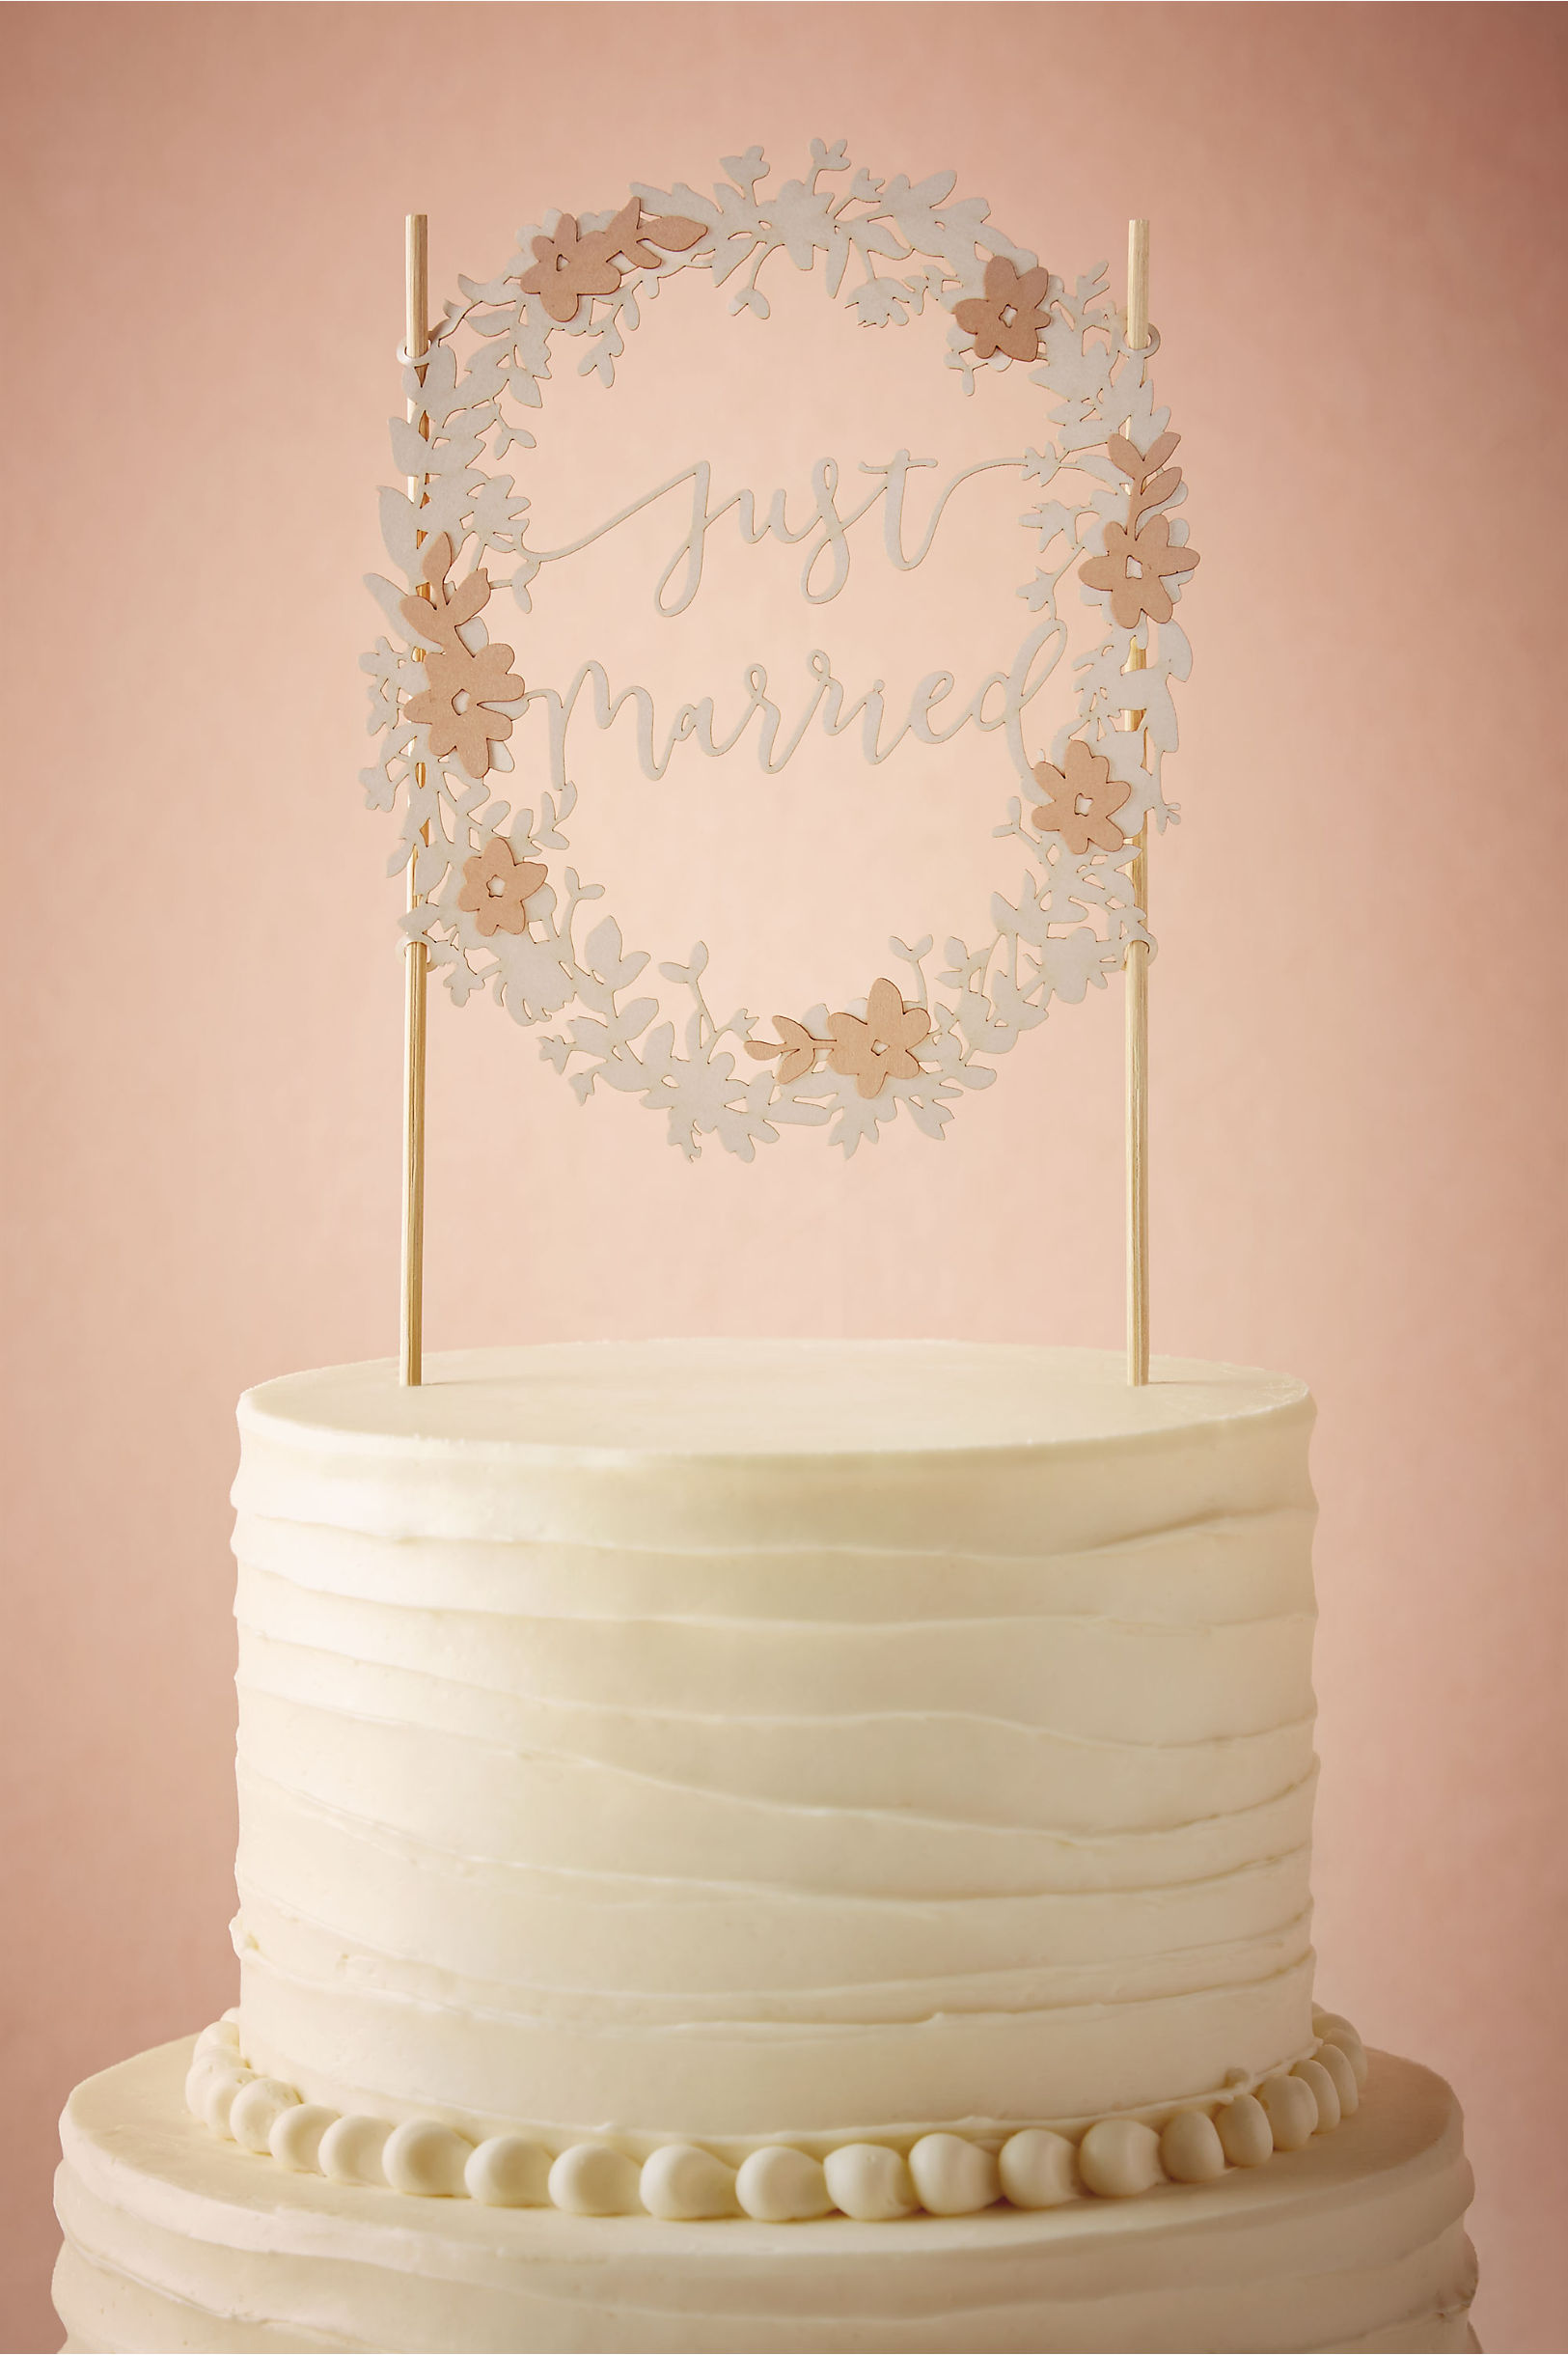 Just Married Cake Topper in Sale